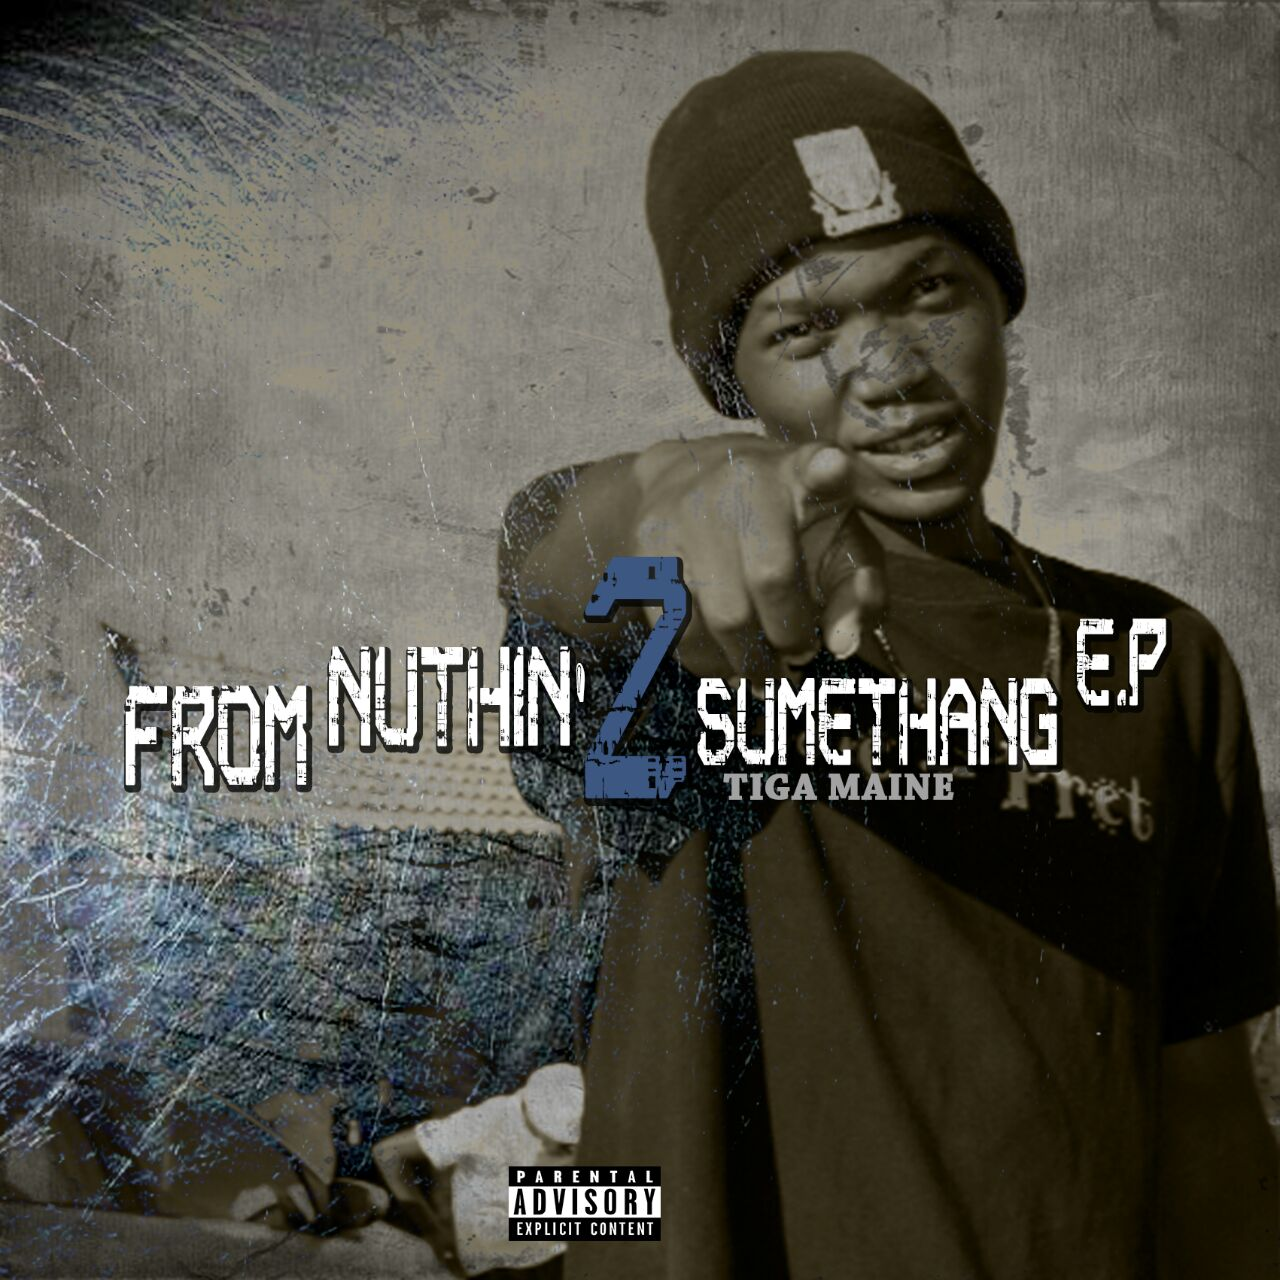 Tiga Maine – From Nuthin' 2 Sumethang (Album/EP)